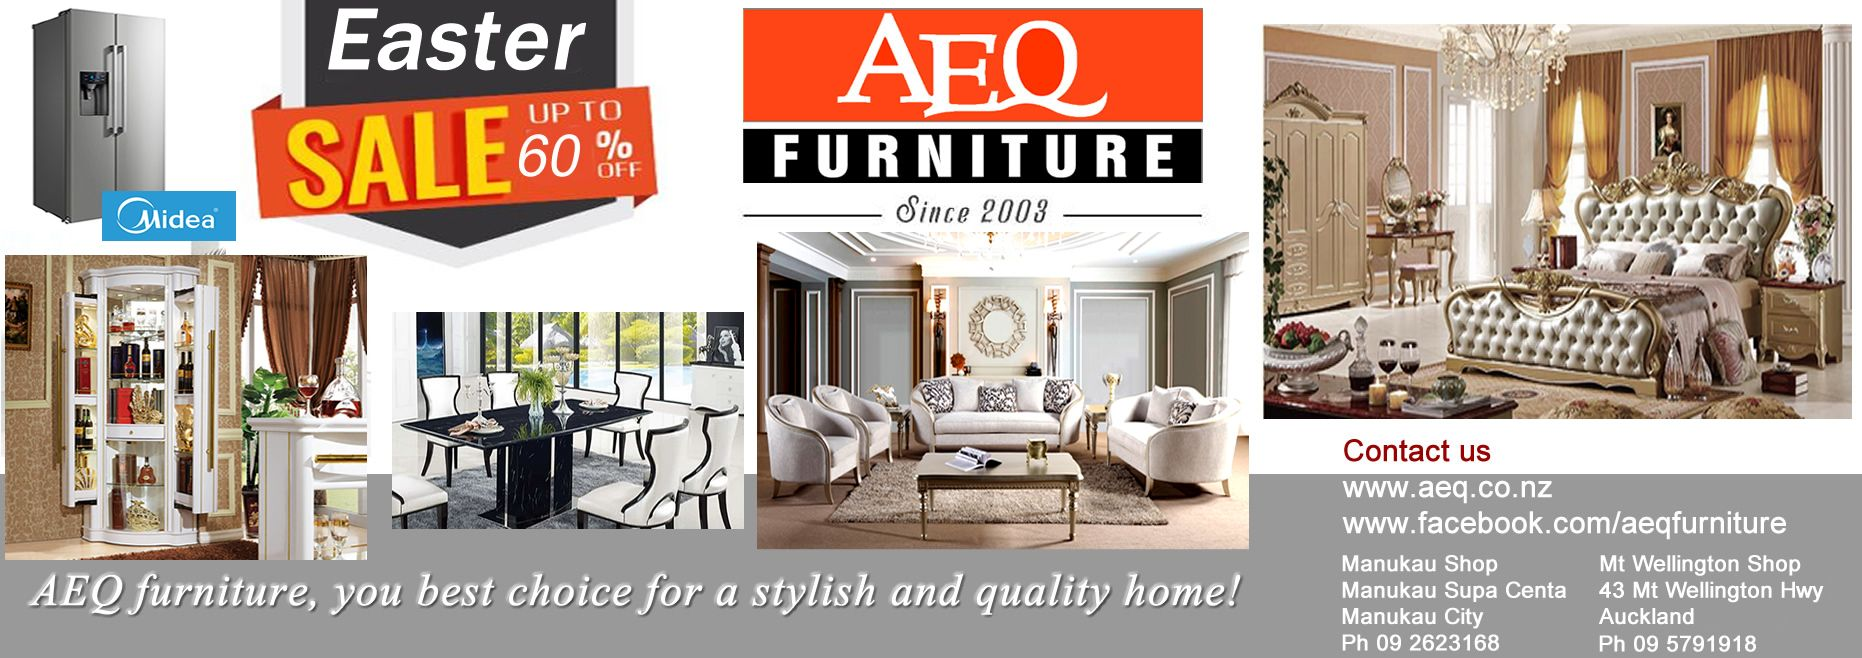 AEQ Furniture (26/03/21 - 03/04/21)